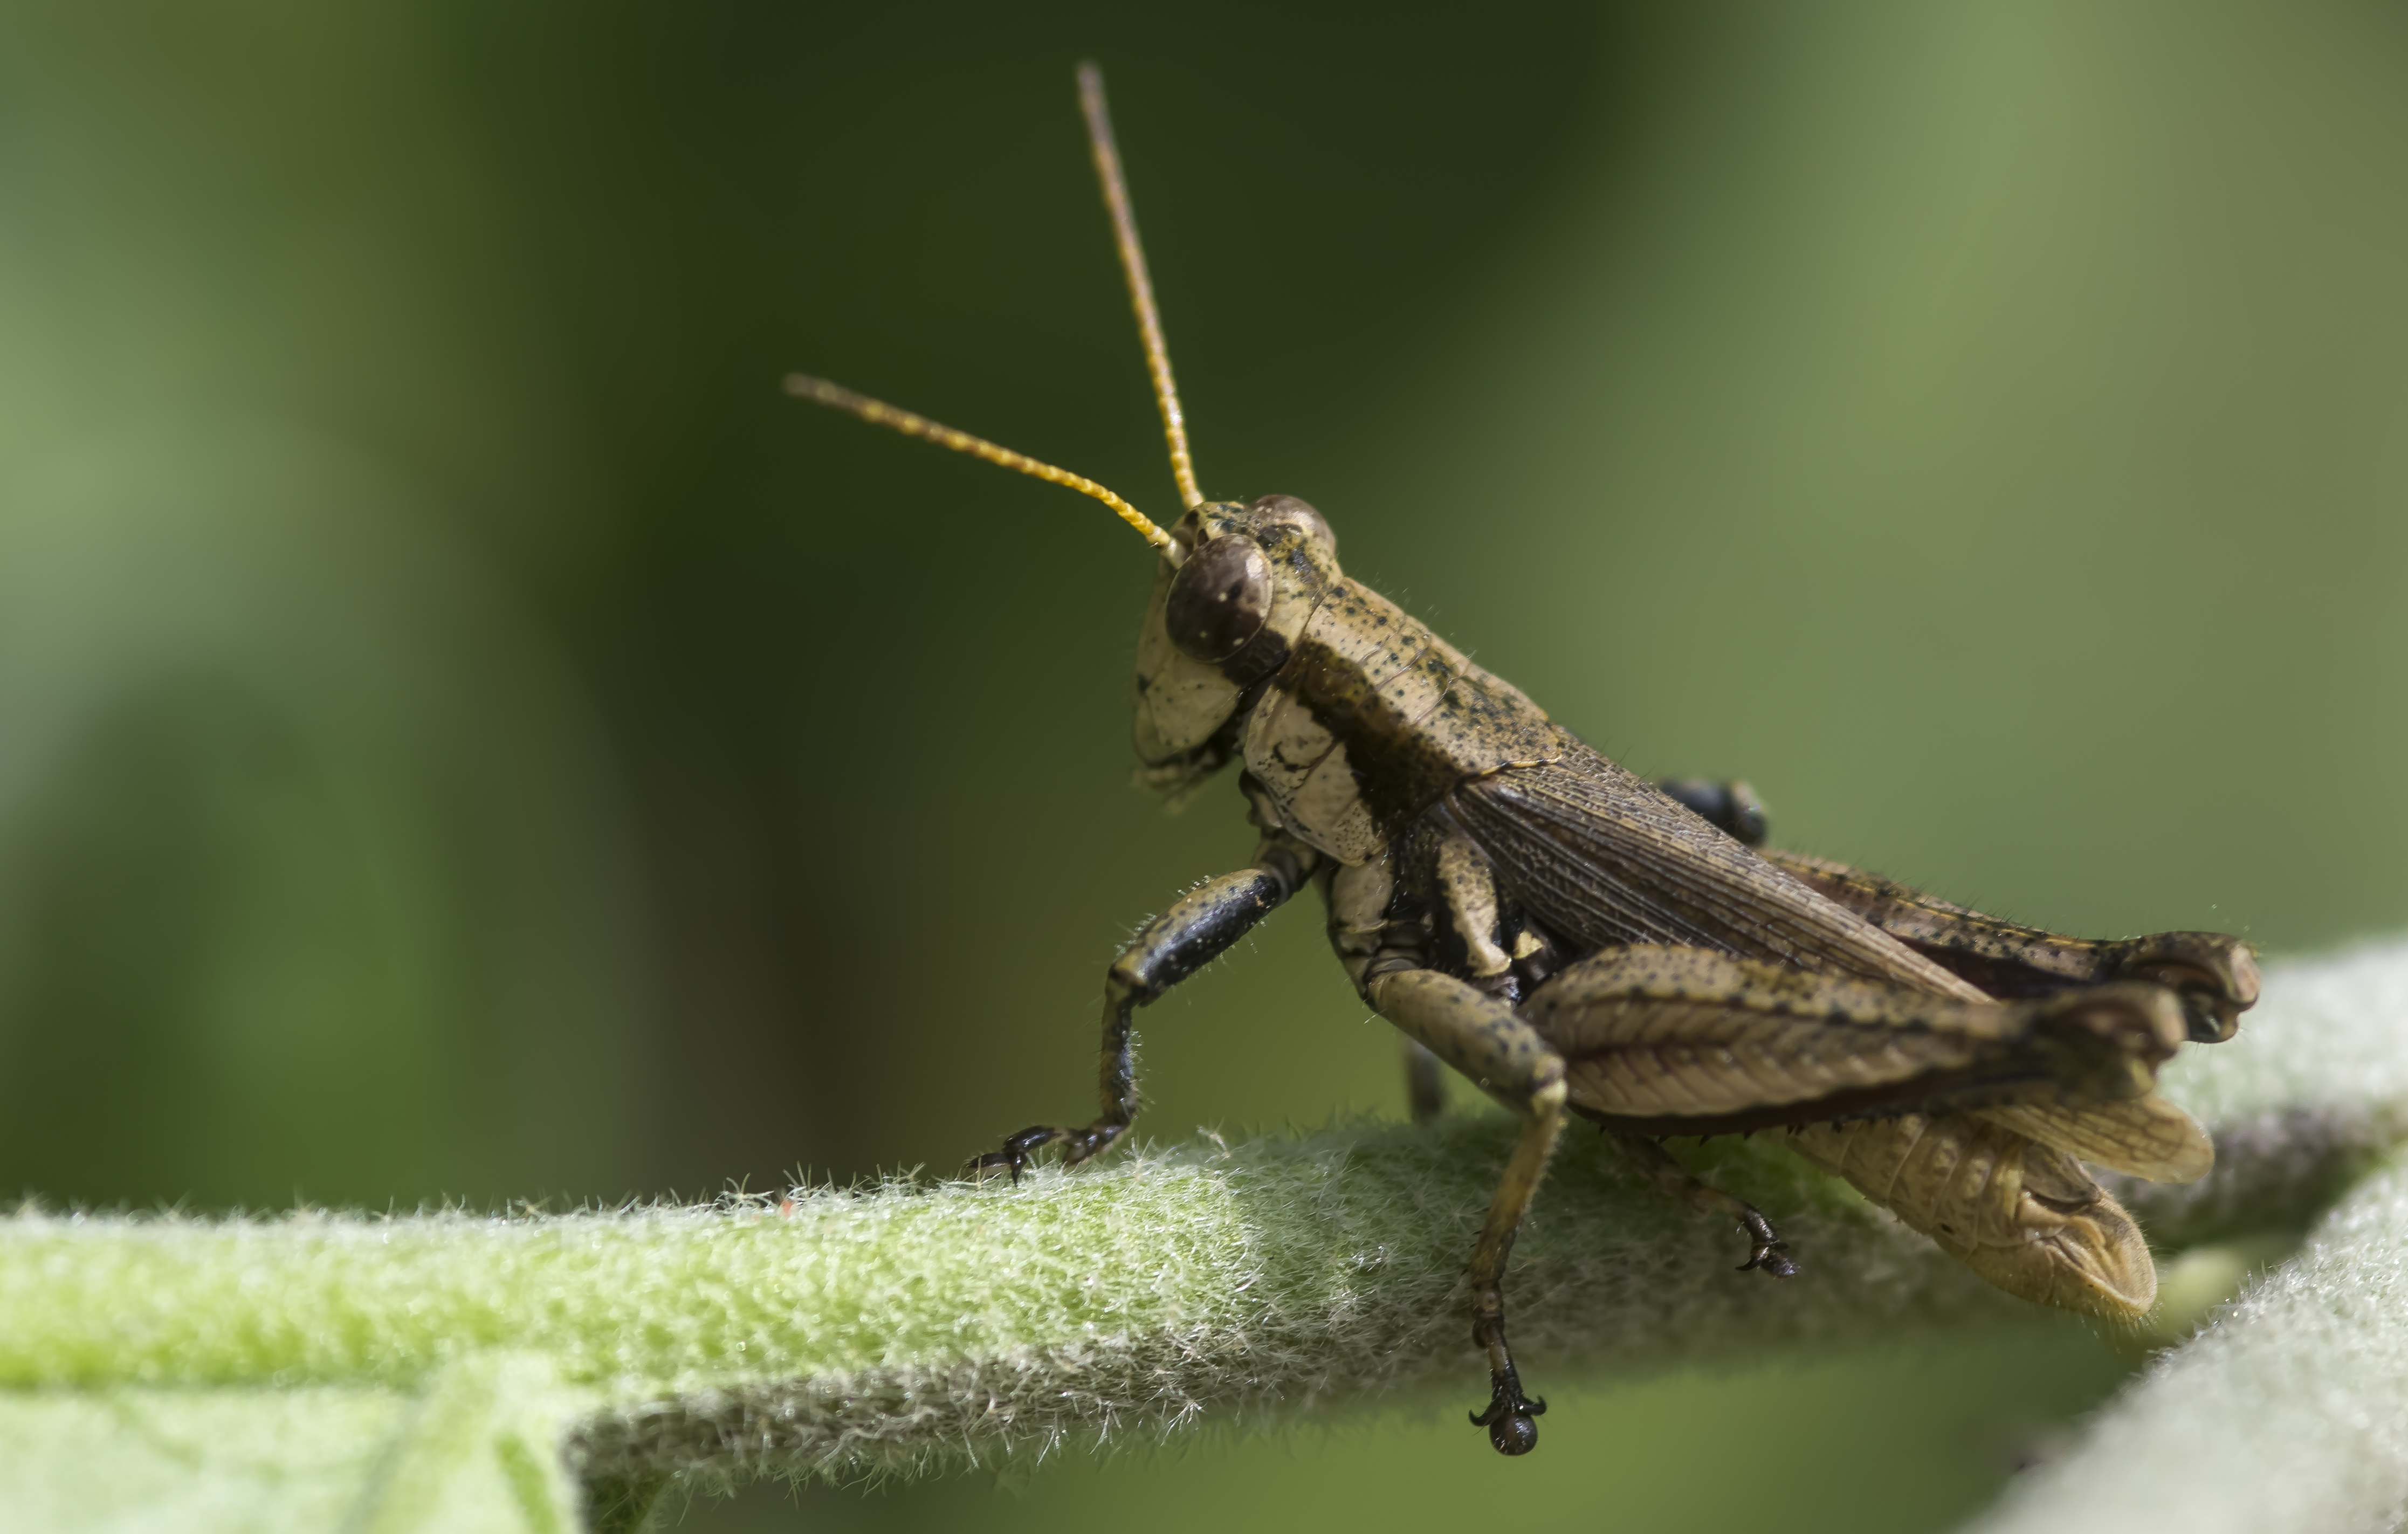 How to Stop Cricket Noises | Hunker